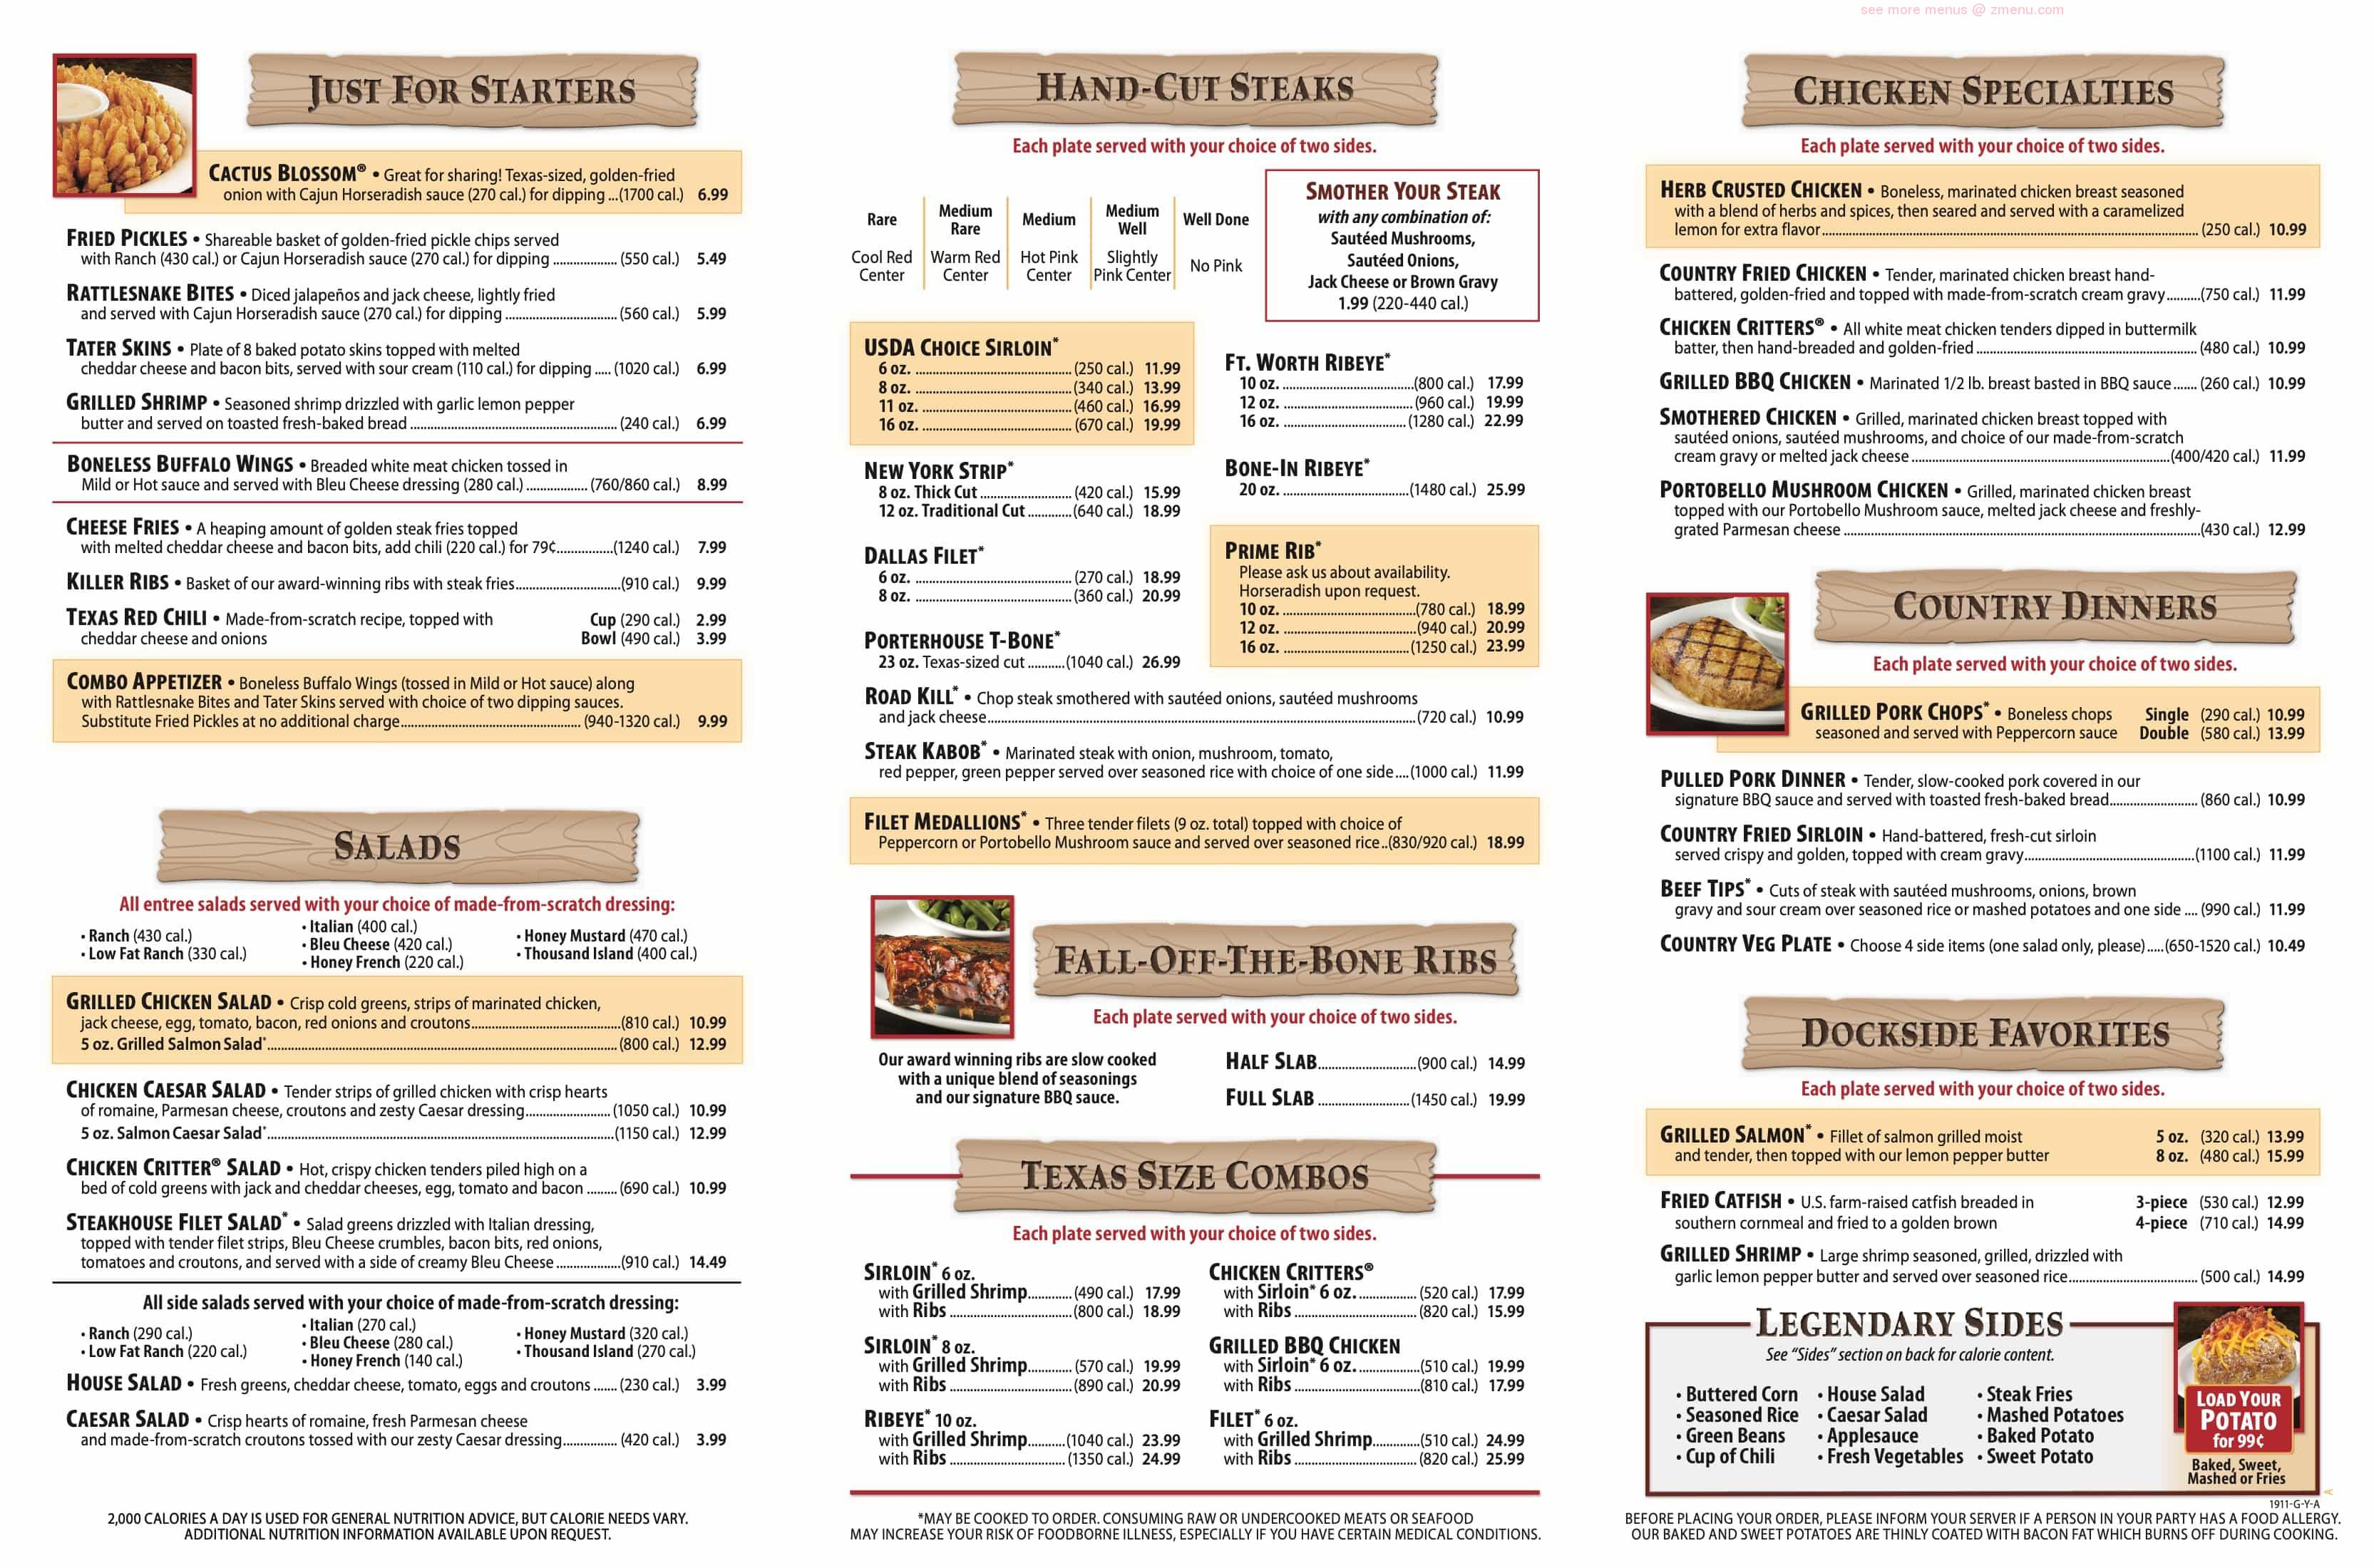 Online Menu of Texas Roadhouse Restaurant, Owensboro, Kentucky